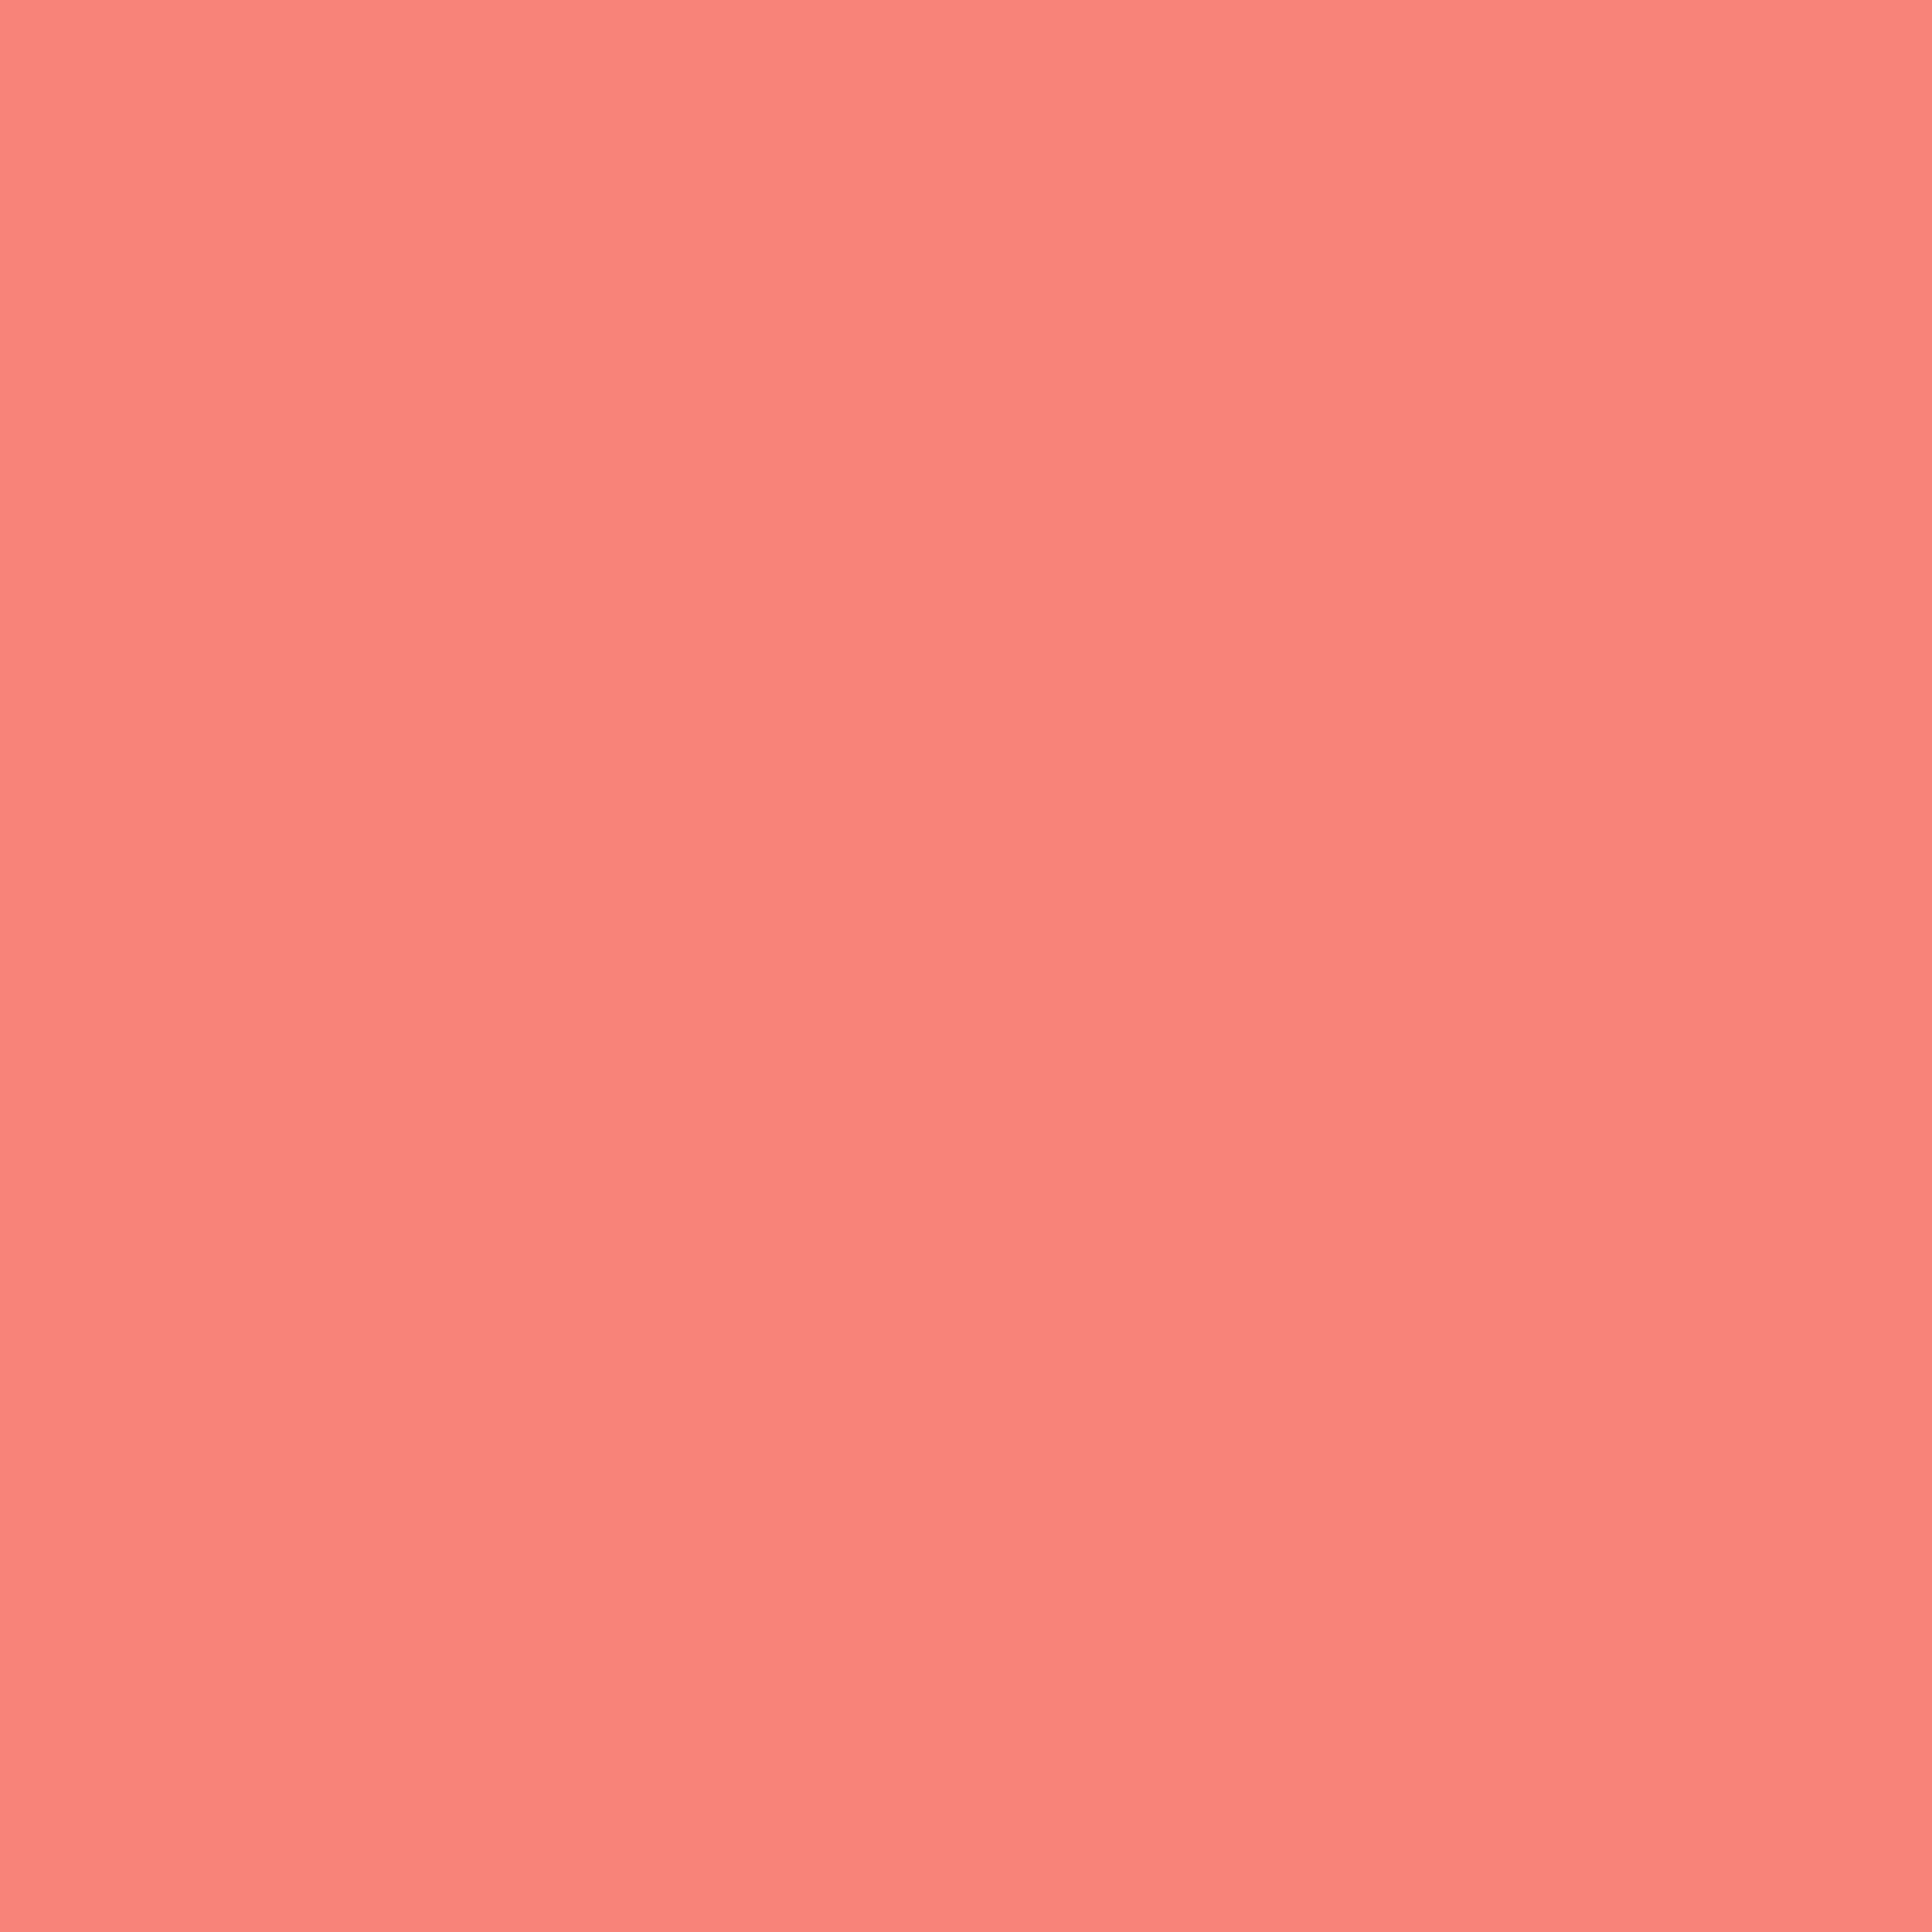 2732x2732 Congo Pink Solid Color Background